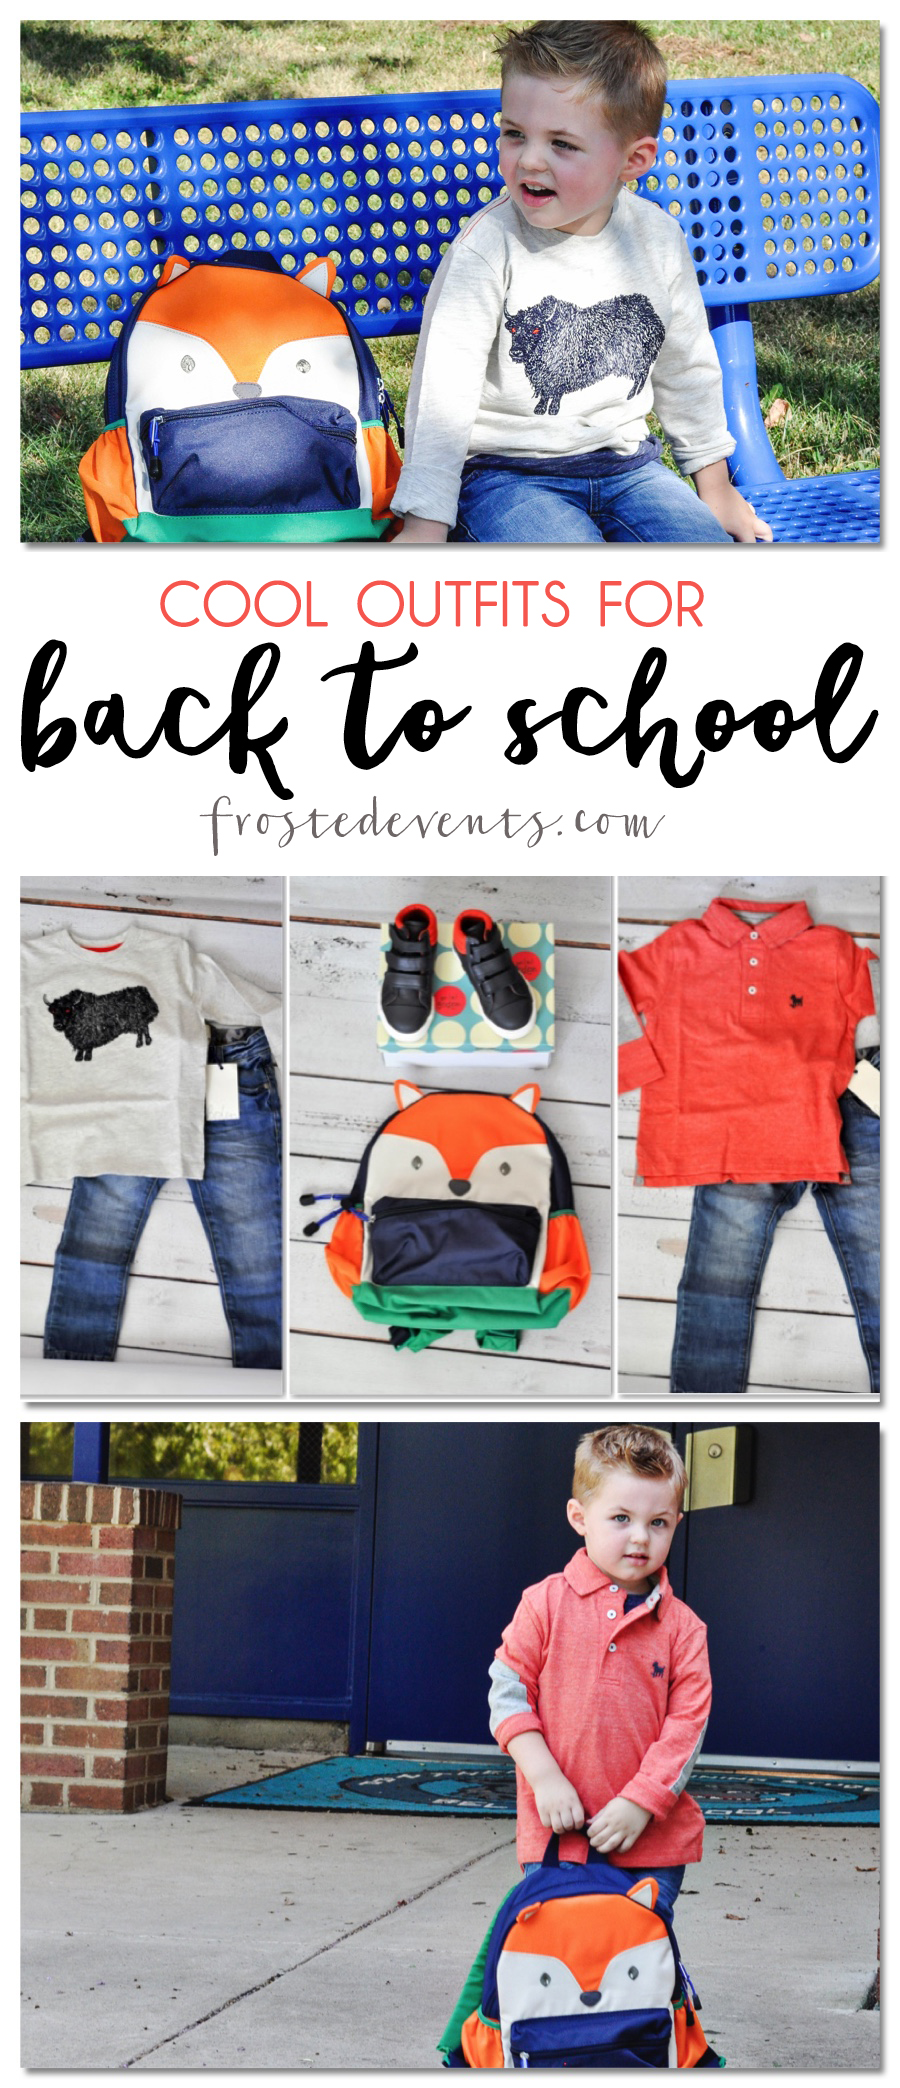 Back to School Outfit Ideas Mini Boden Kids Fashion Clothes @frostedevents